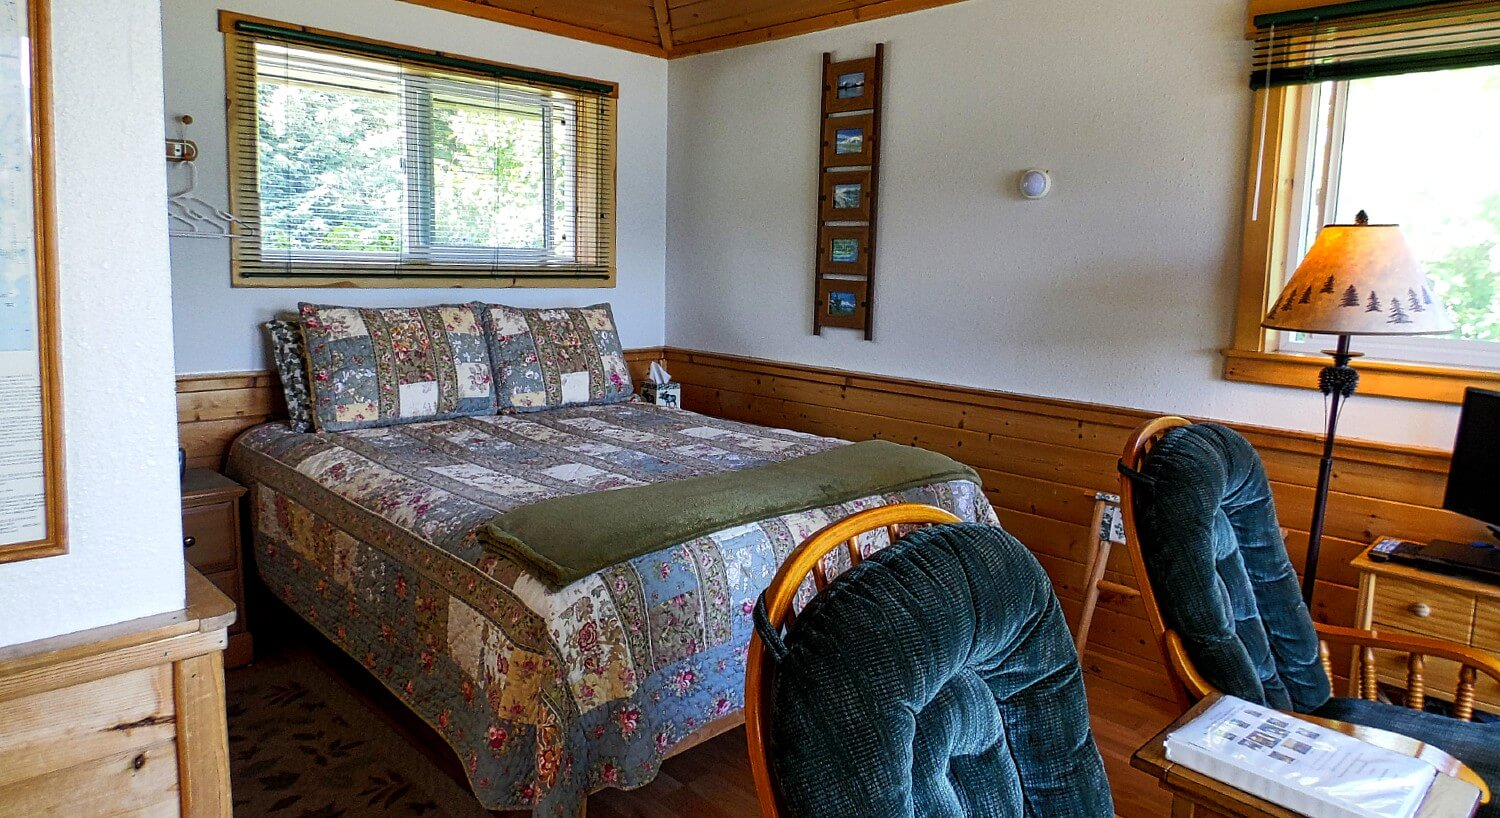 Room in a cabin featuring queen bed with blue quilt, wood paneling, and two plush sitting chairs